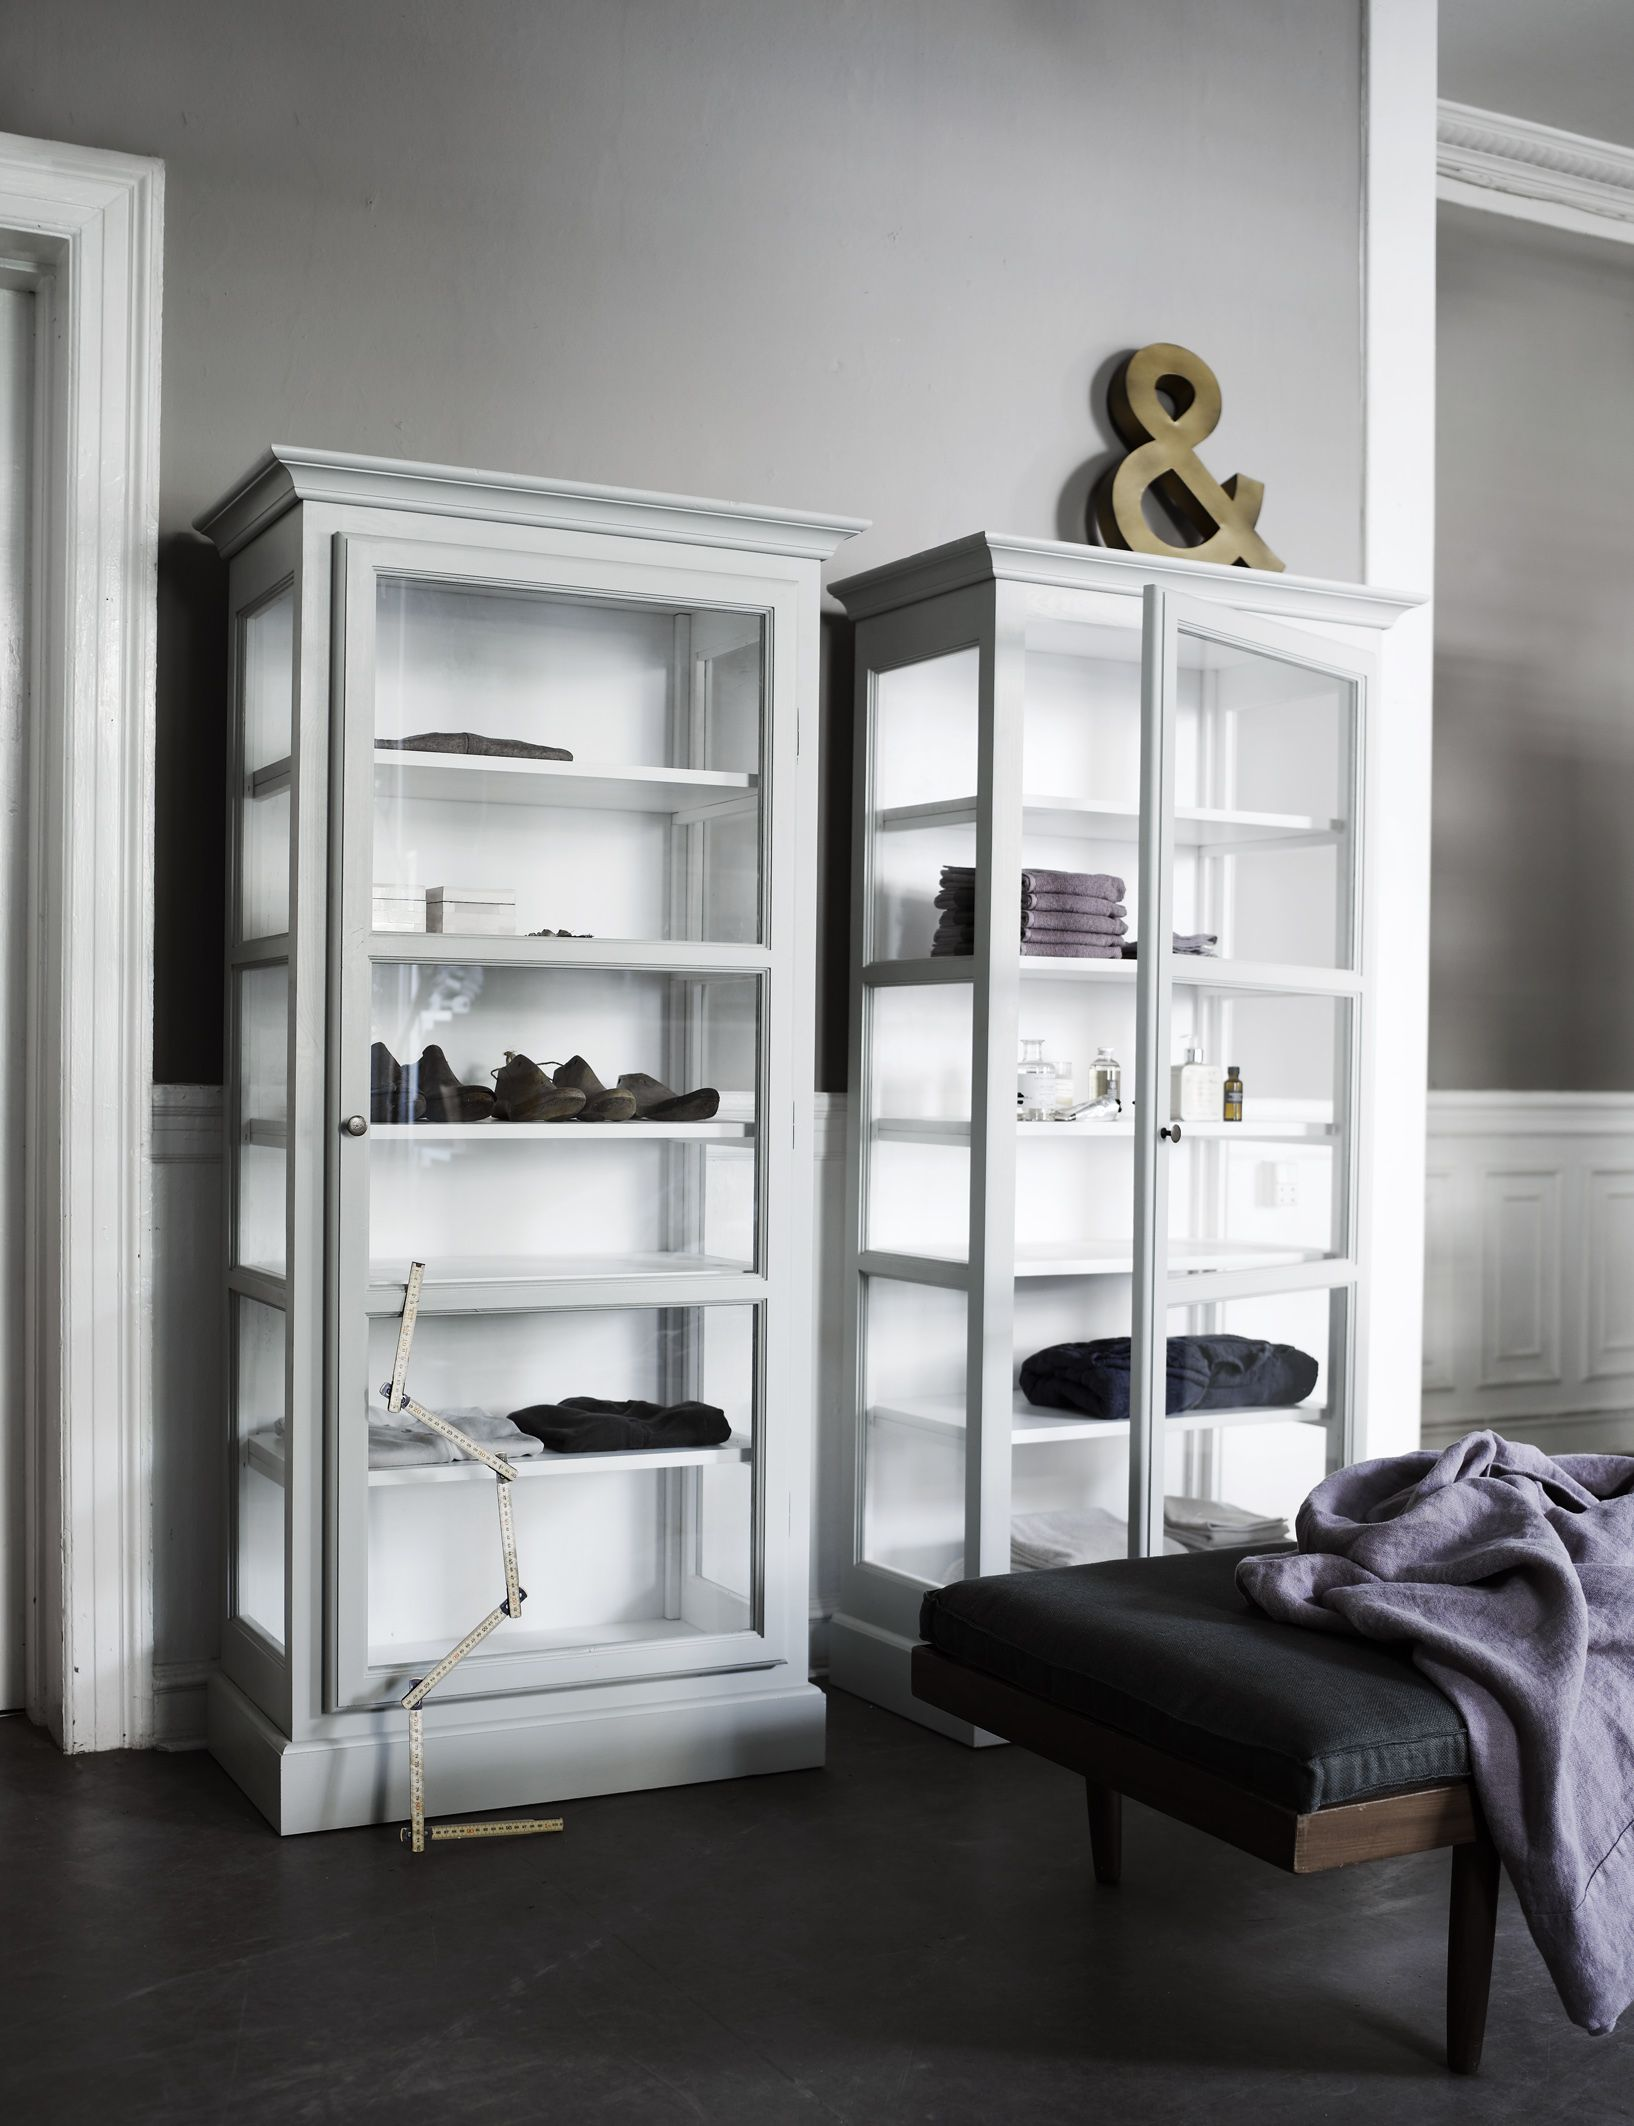 Danish Glass Cabinets By Lindebjerg Design